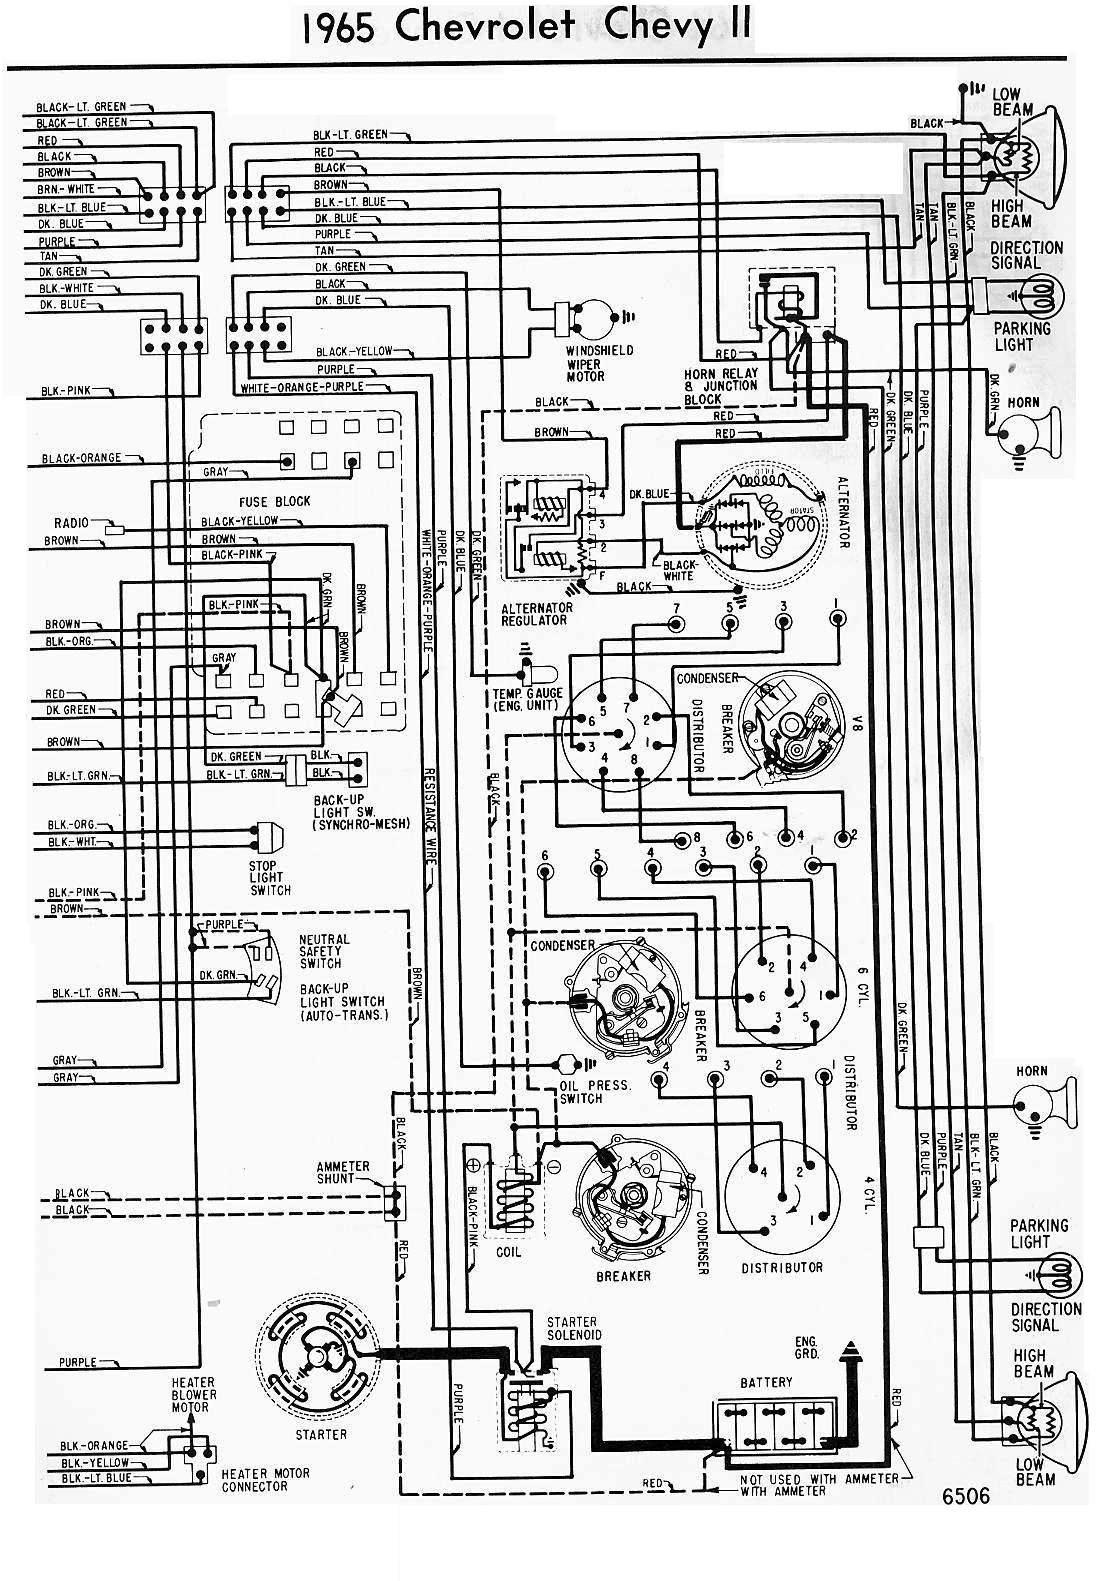 1973 corvette wiper switch wiring diagram html with 1965 Chevrolet Chevy Ii Wiring Diagram on Universal Wiper Switch Wiring Diagram 4 Wire Wiper Motor furthermore Vacuum Hose Diagram 1990 Chevy 350 Tbi further Vw Turn Signal Lenses Assemblies further Diagram additionally 1966 Corvette Engine Wiring.